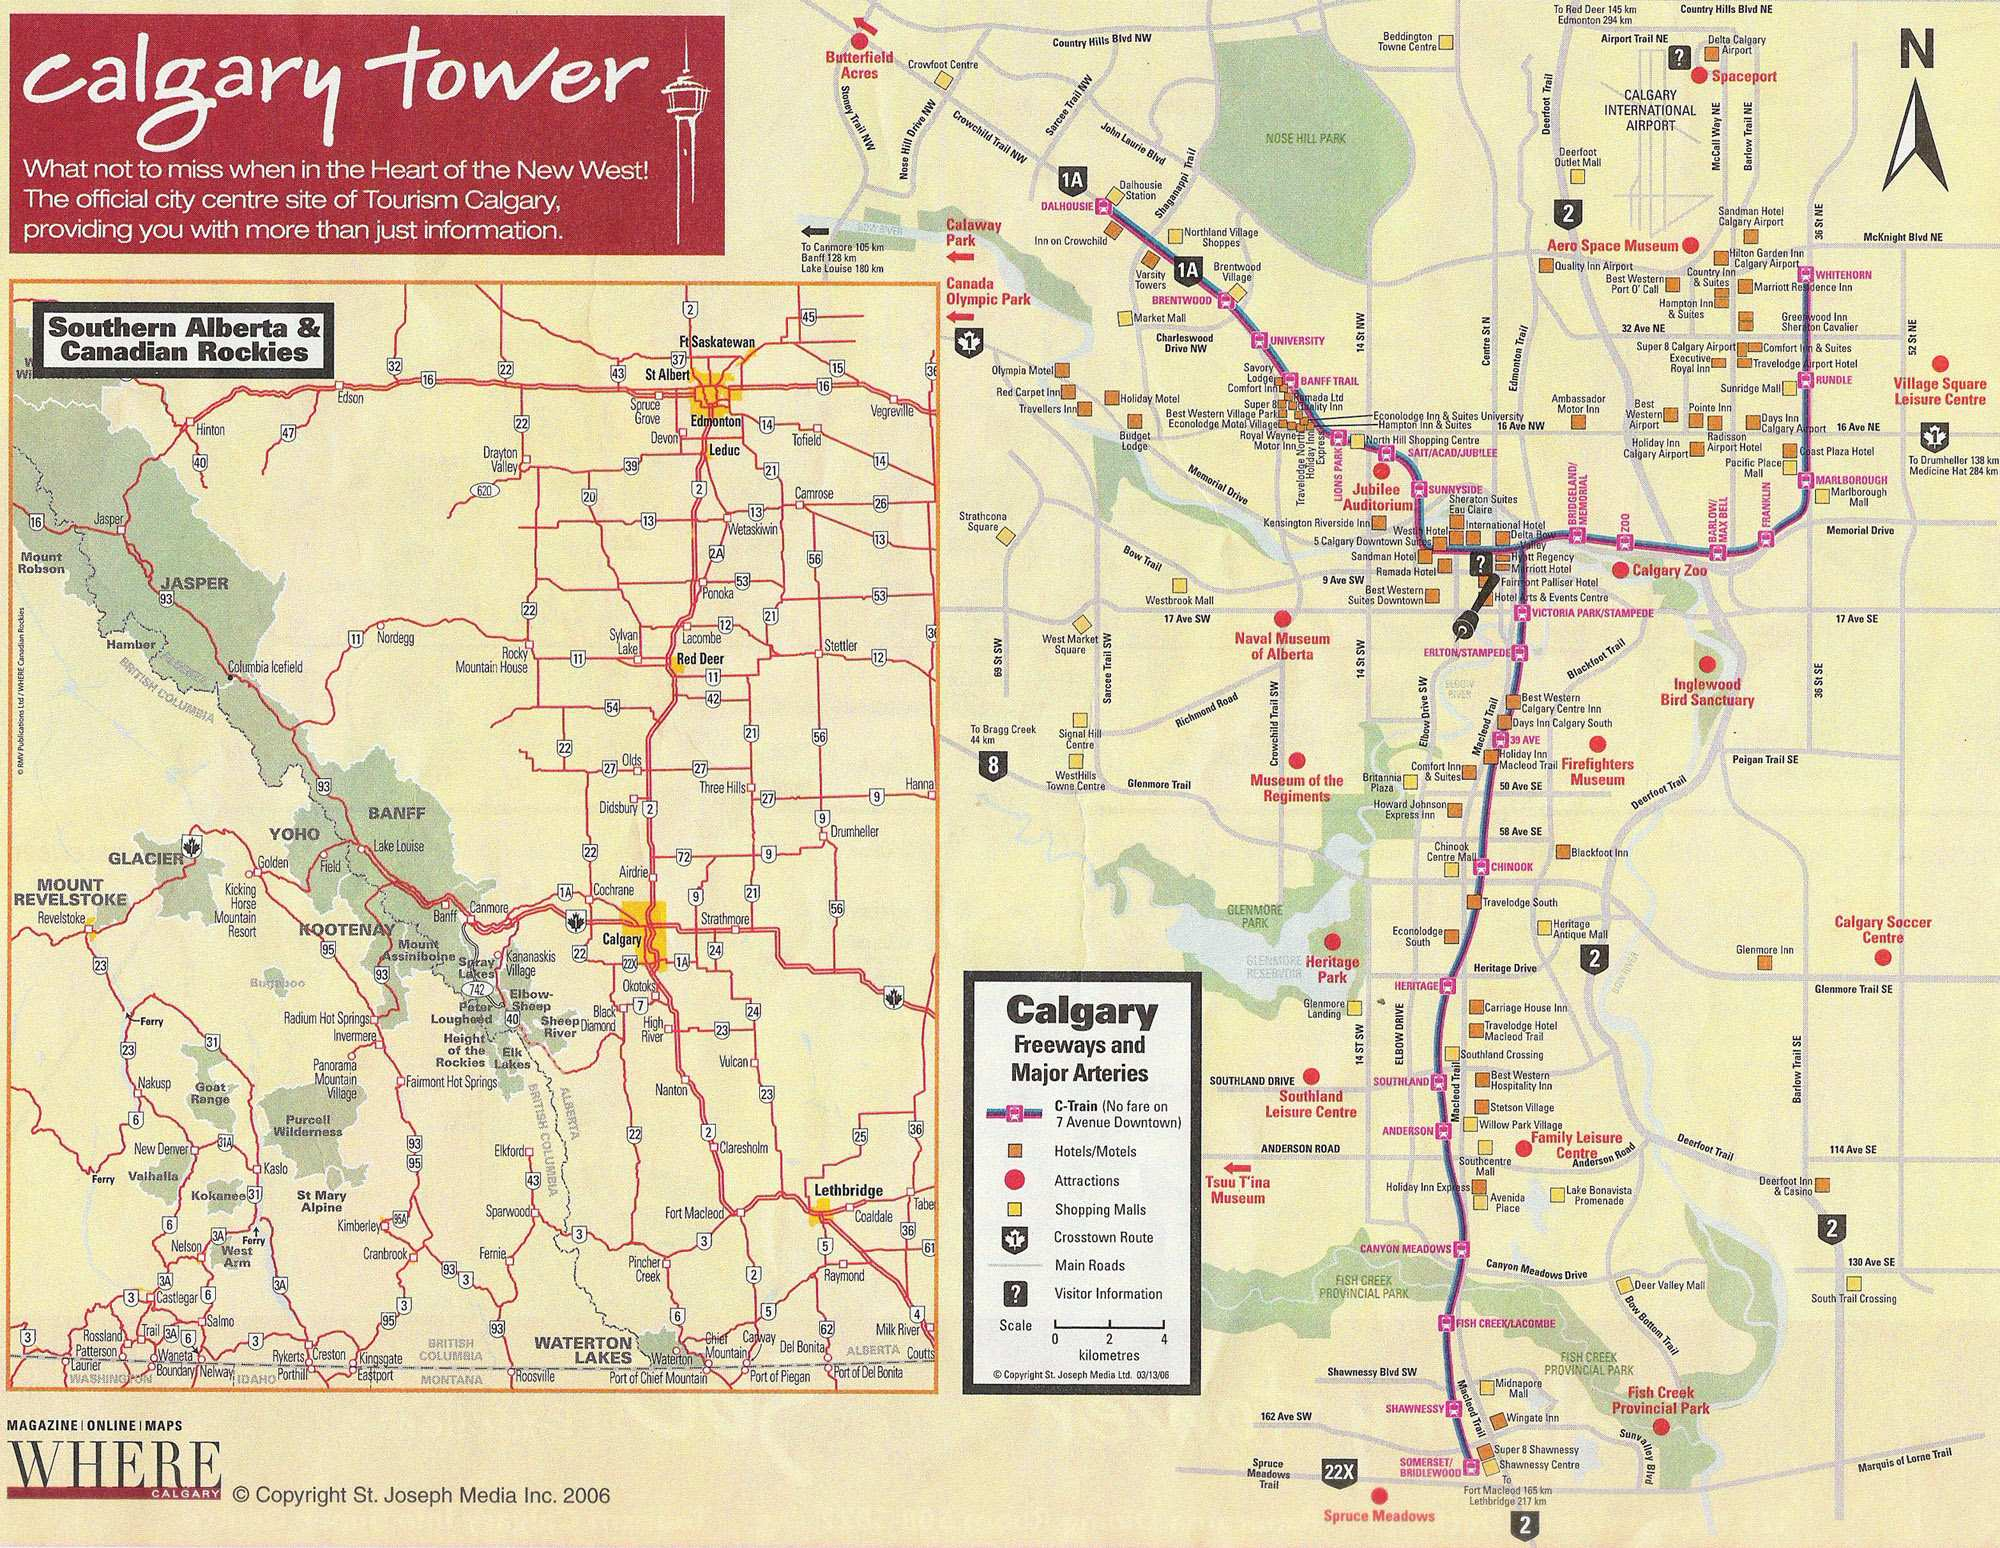 Calgary On Map Of Canada.Large Calgary Maps For Free Download And Print High Resolution And